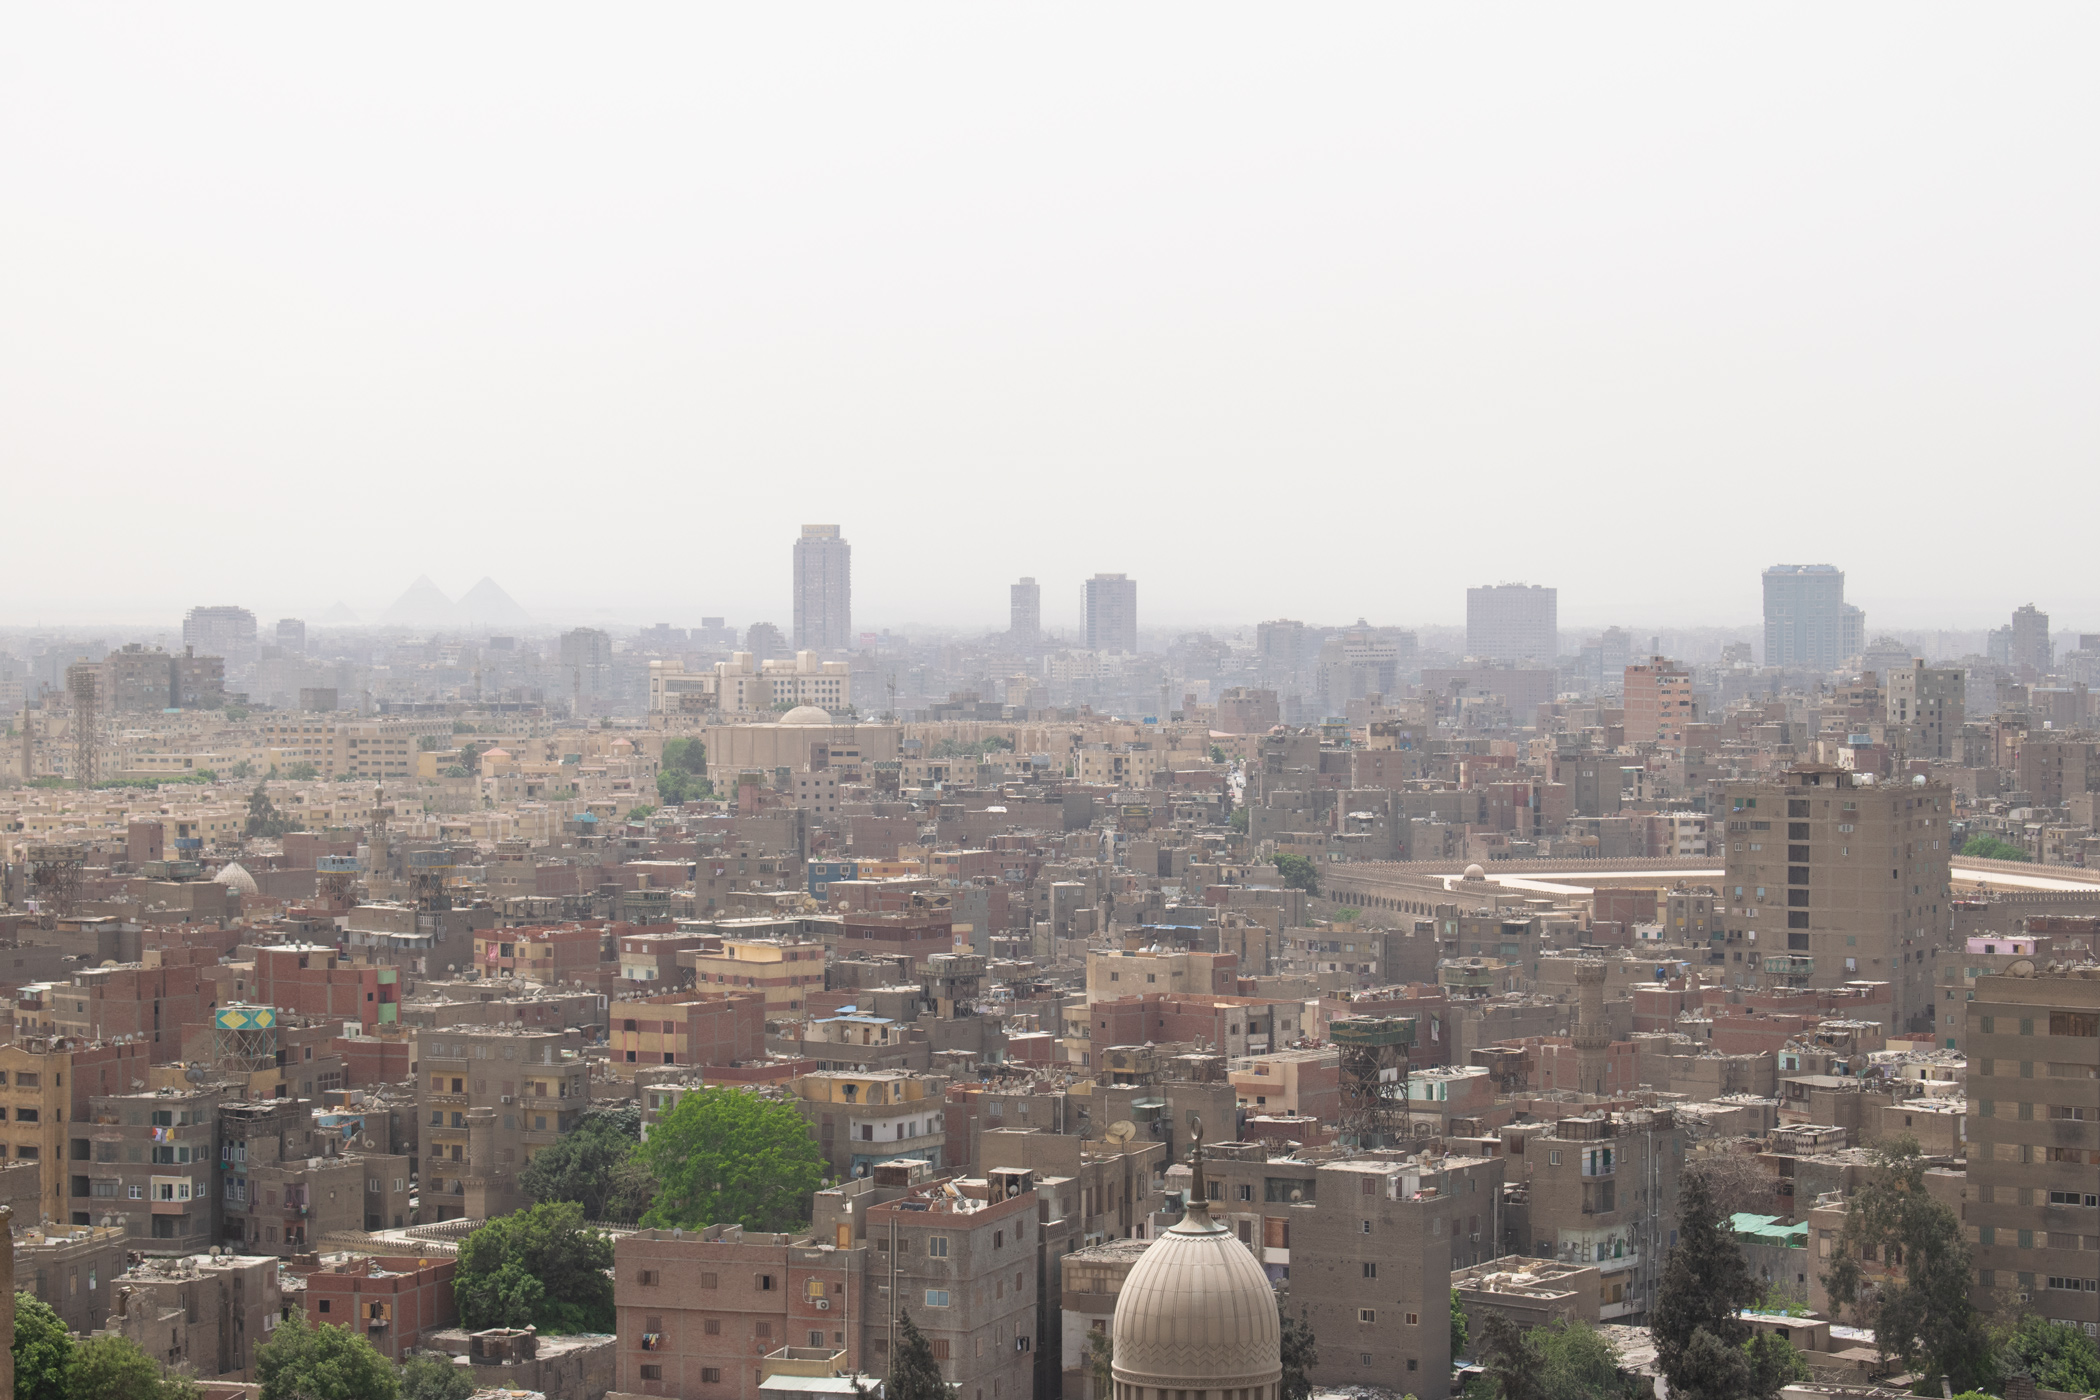 Cairo has a remarkable skyline, which can be best seen from Cairo Citadel. But the air pollution is evident as you look towards the horizon.